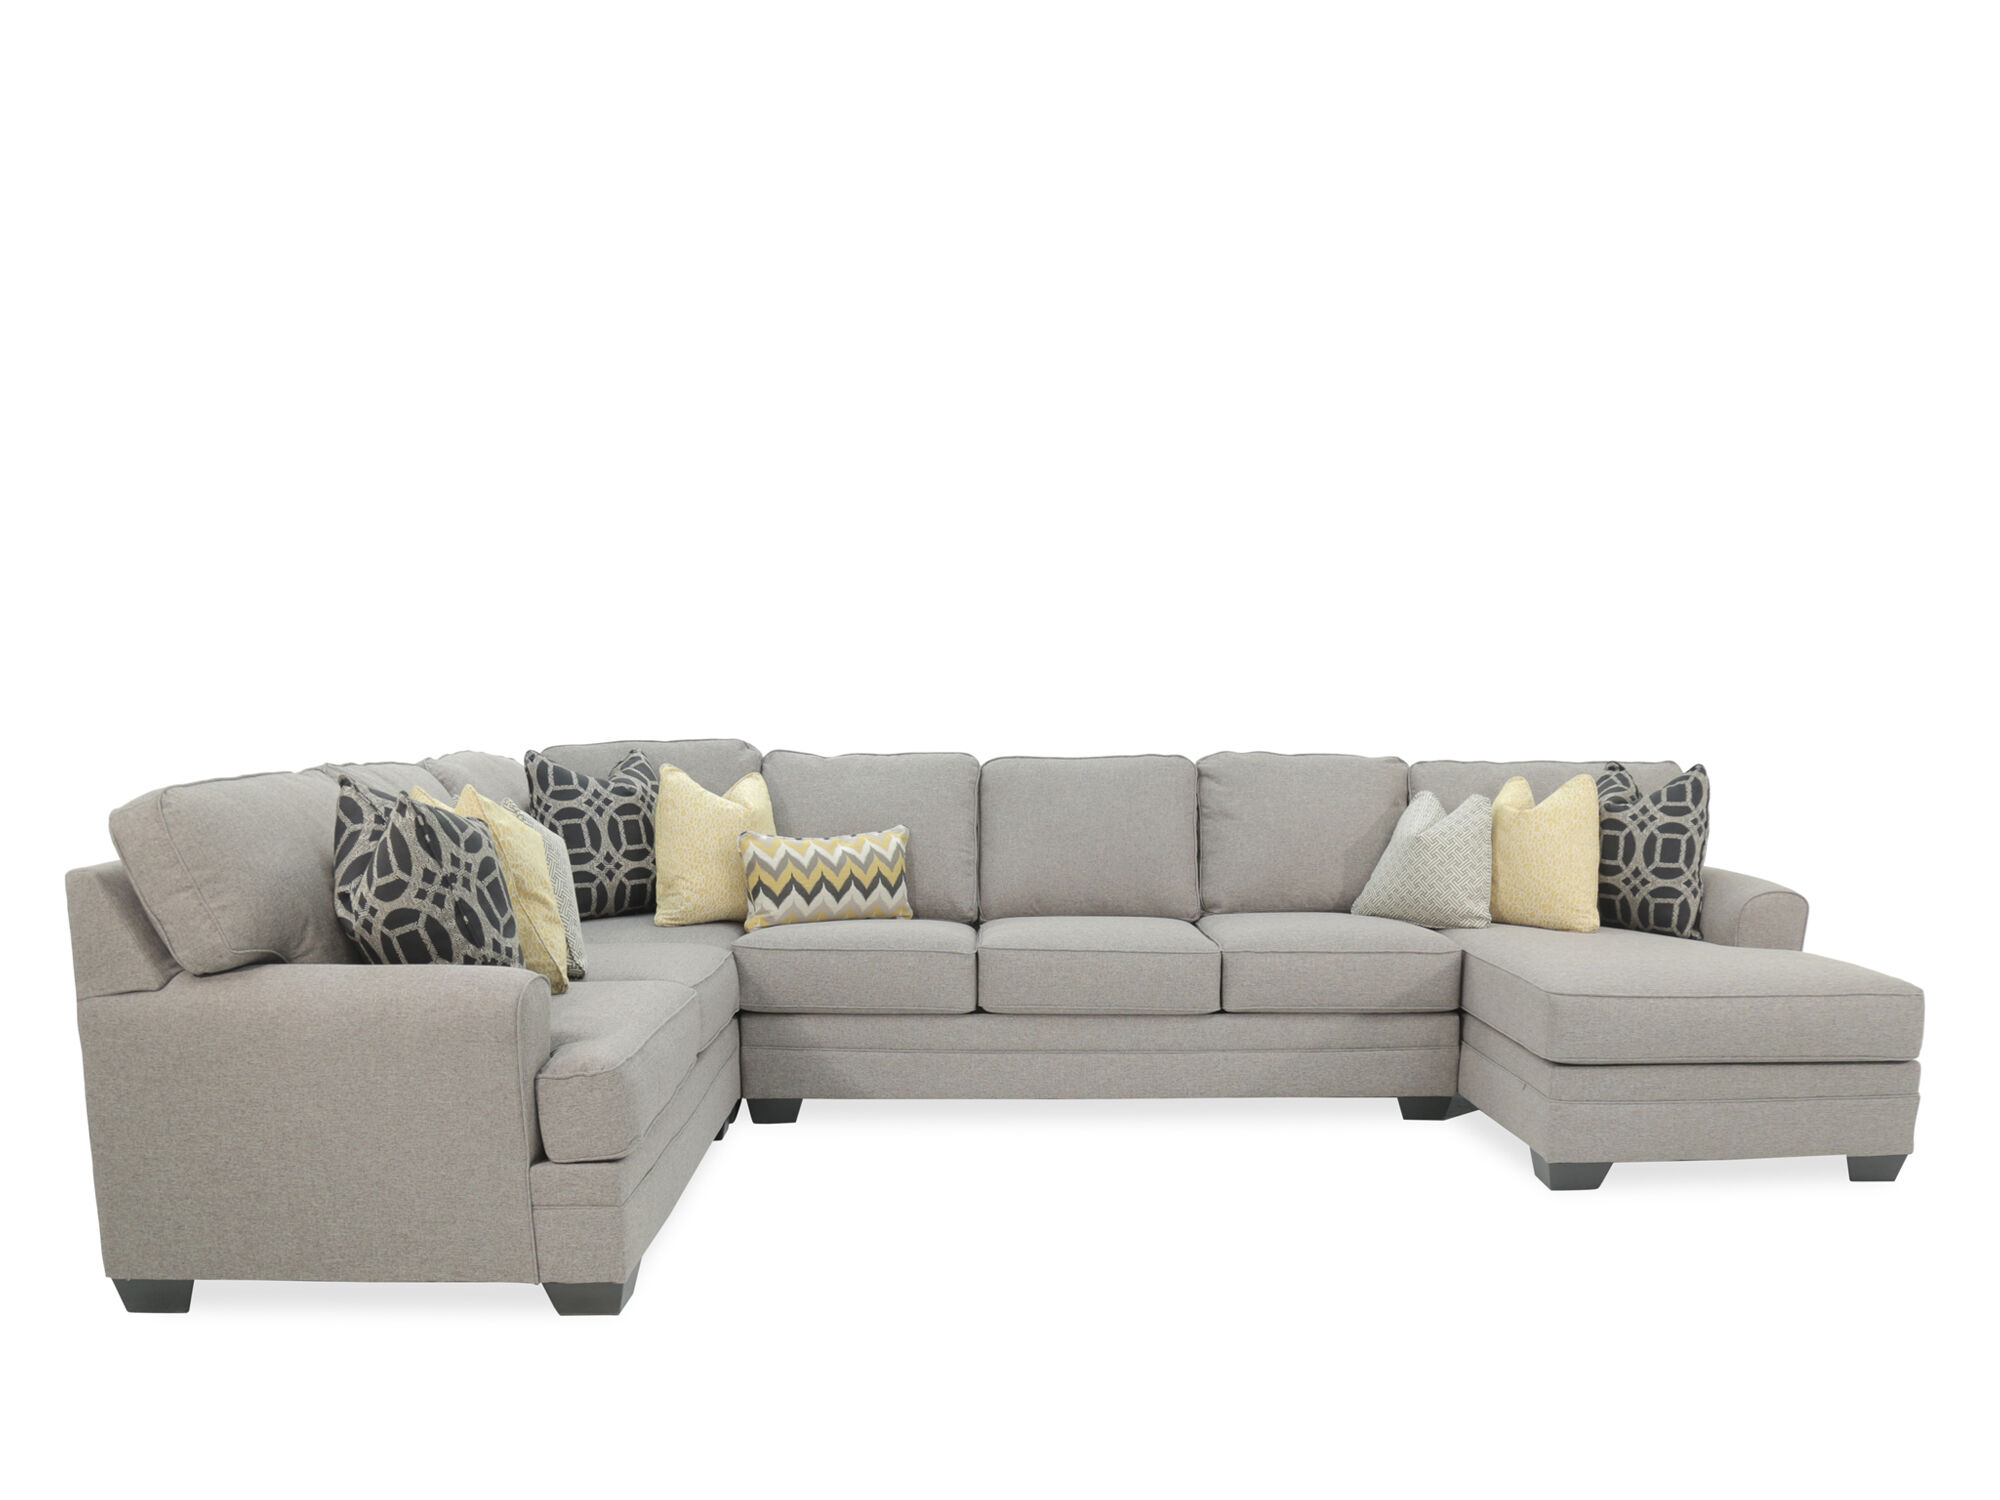 4 piece recliner sectional sofa find sofas for sale four contemporary 155 quot in gray mathis